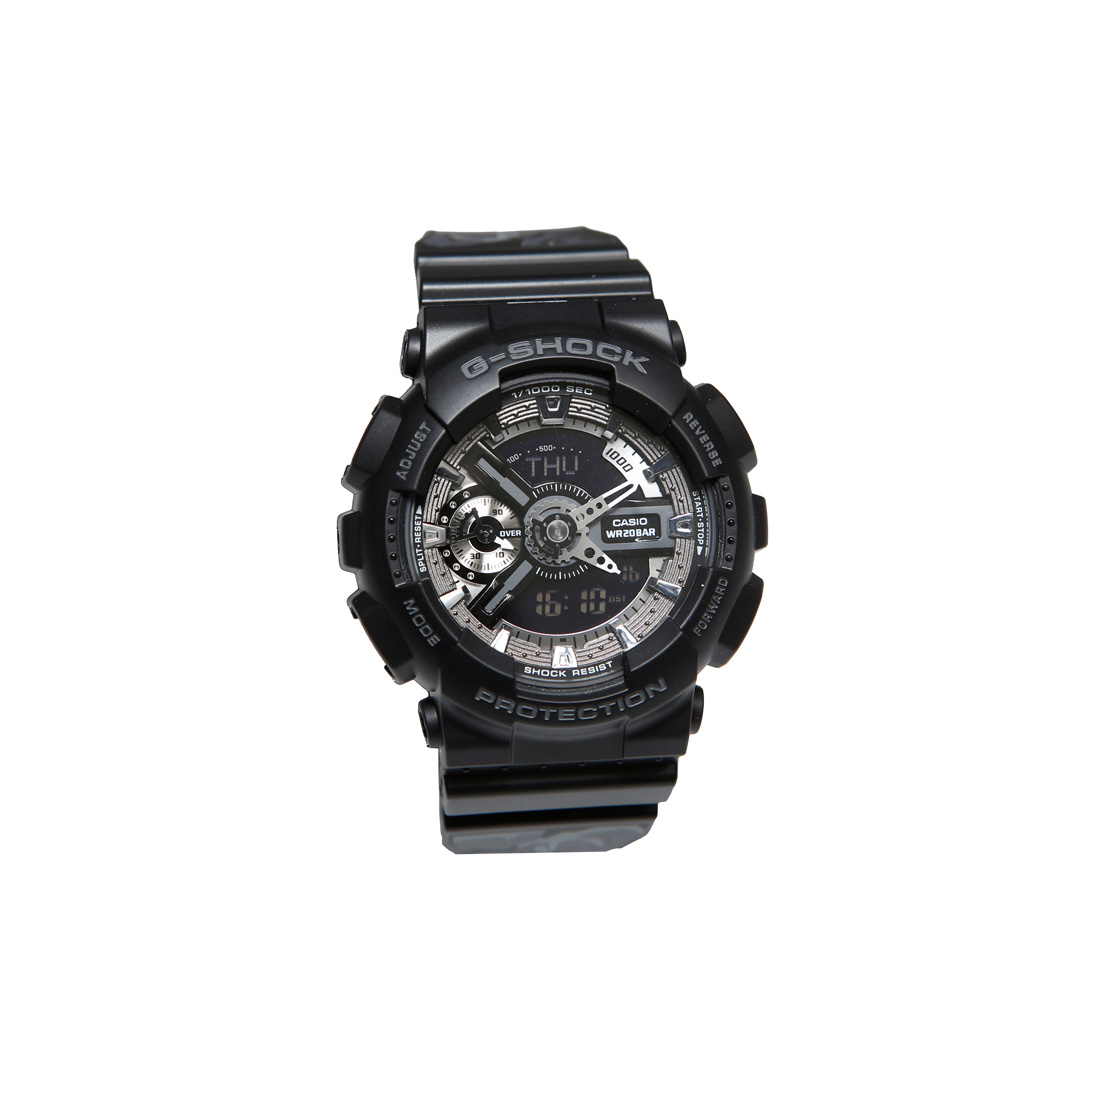 Часы GMA-S110F-1A Casio